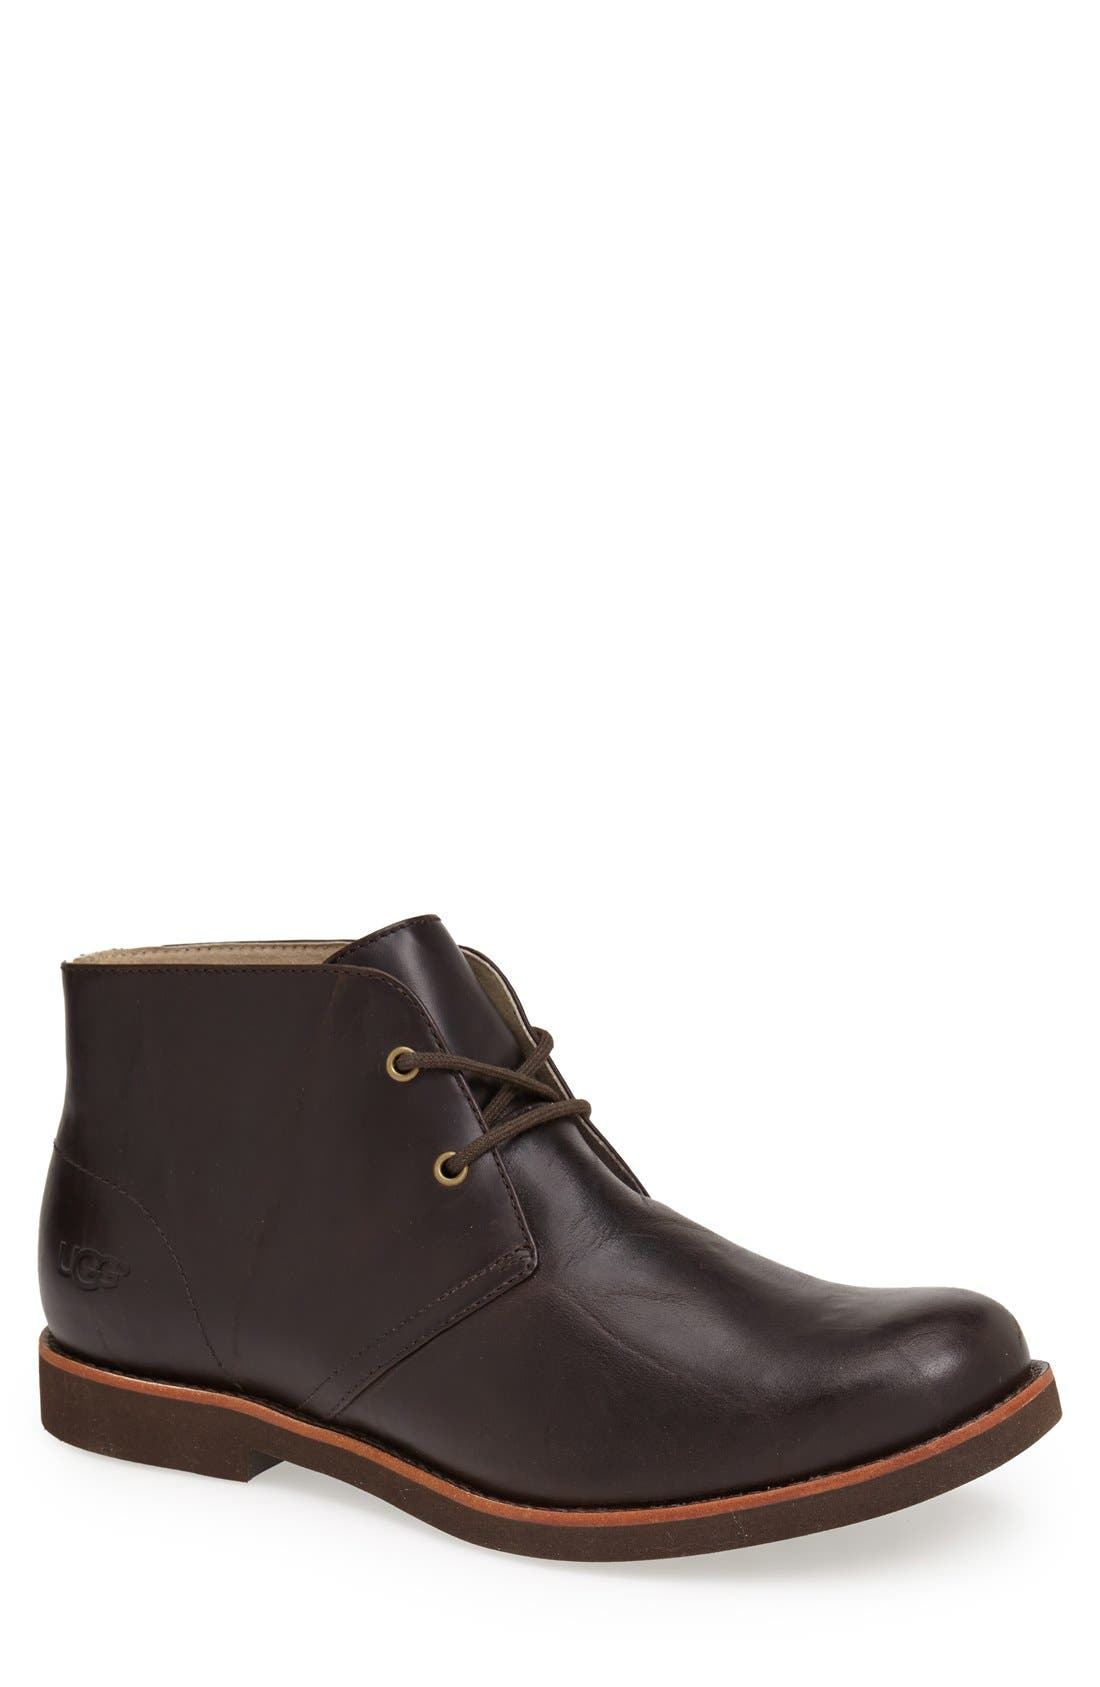 Alternate Image 1 Selected - UGG® Australia 'Westly' Chukka Boot (Men)